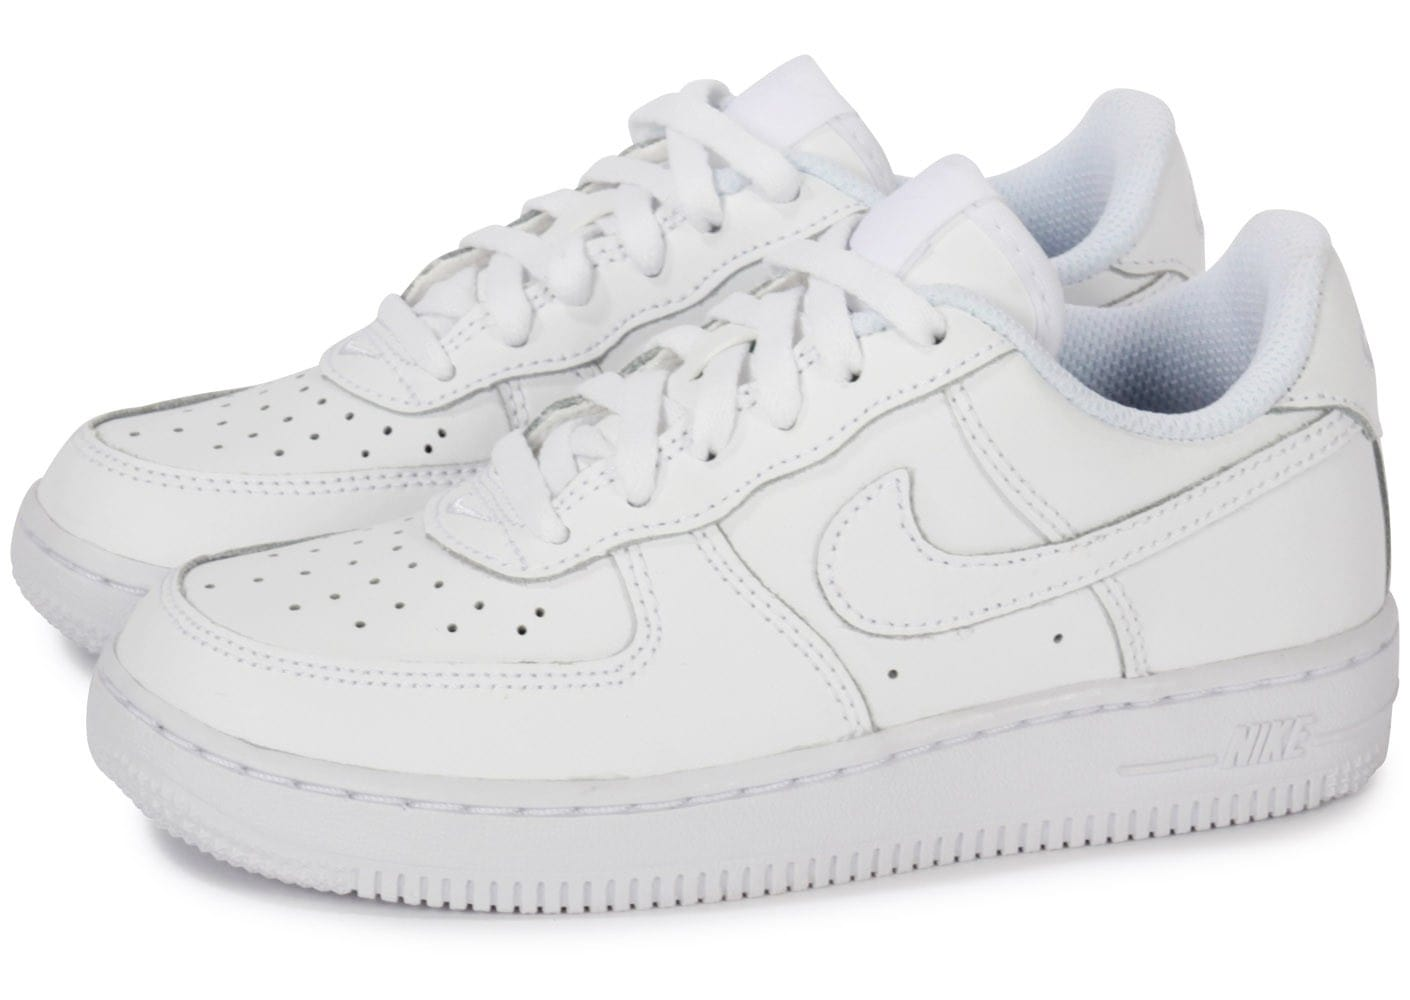 wholesale outlet nice shoes amazing selection Nike Air Force 1 Enfant Blanche - Chaussures Enfant - Chausport